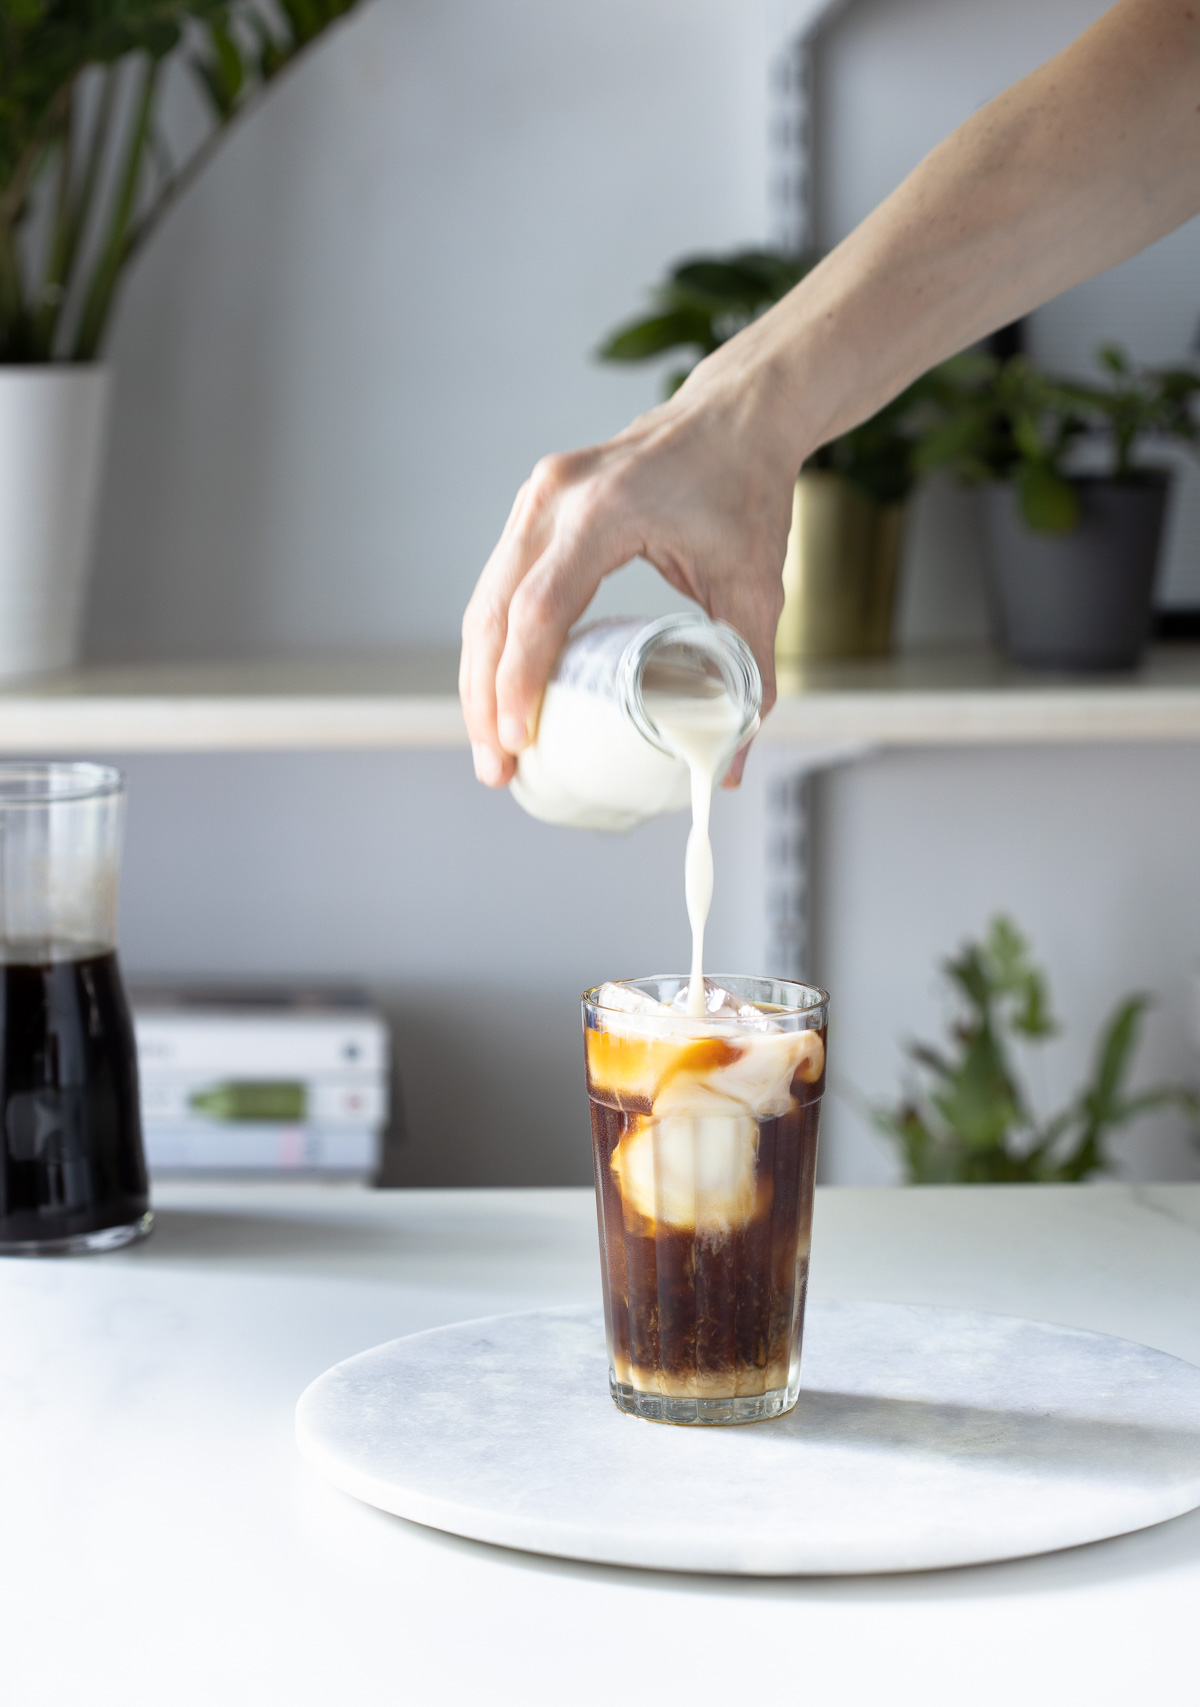 A woman's hand pouring milk into a glass of cold brew coffee with ice.